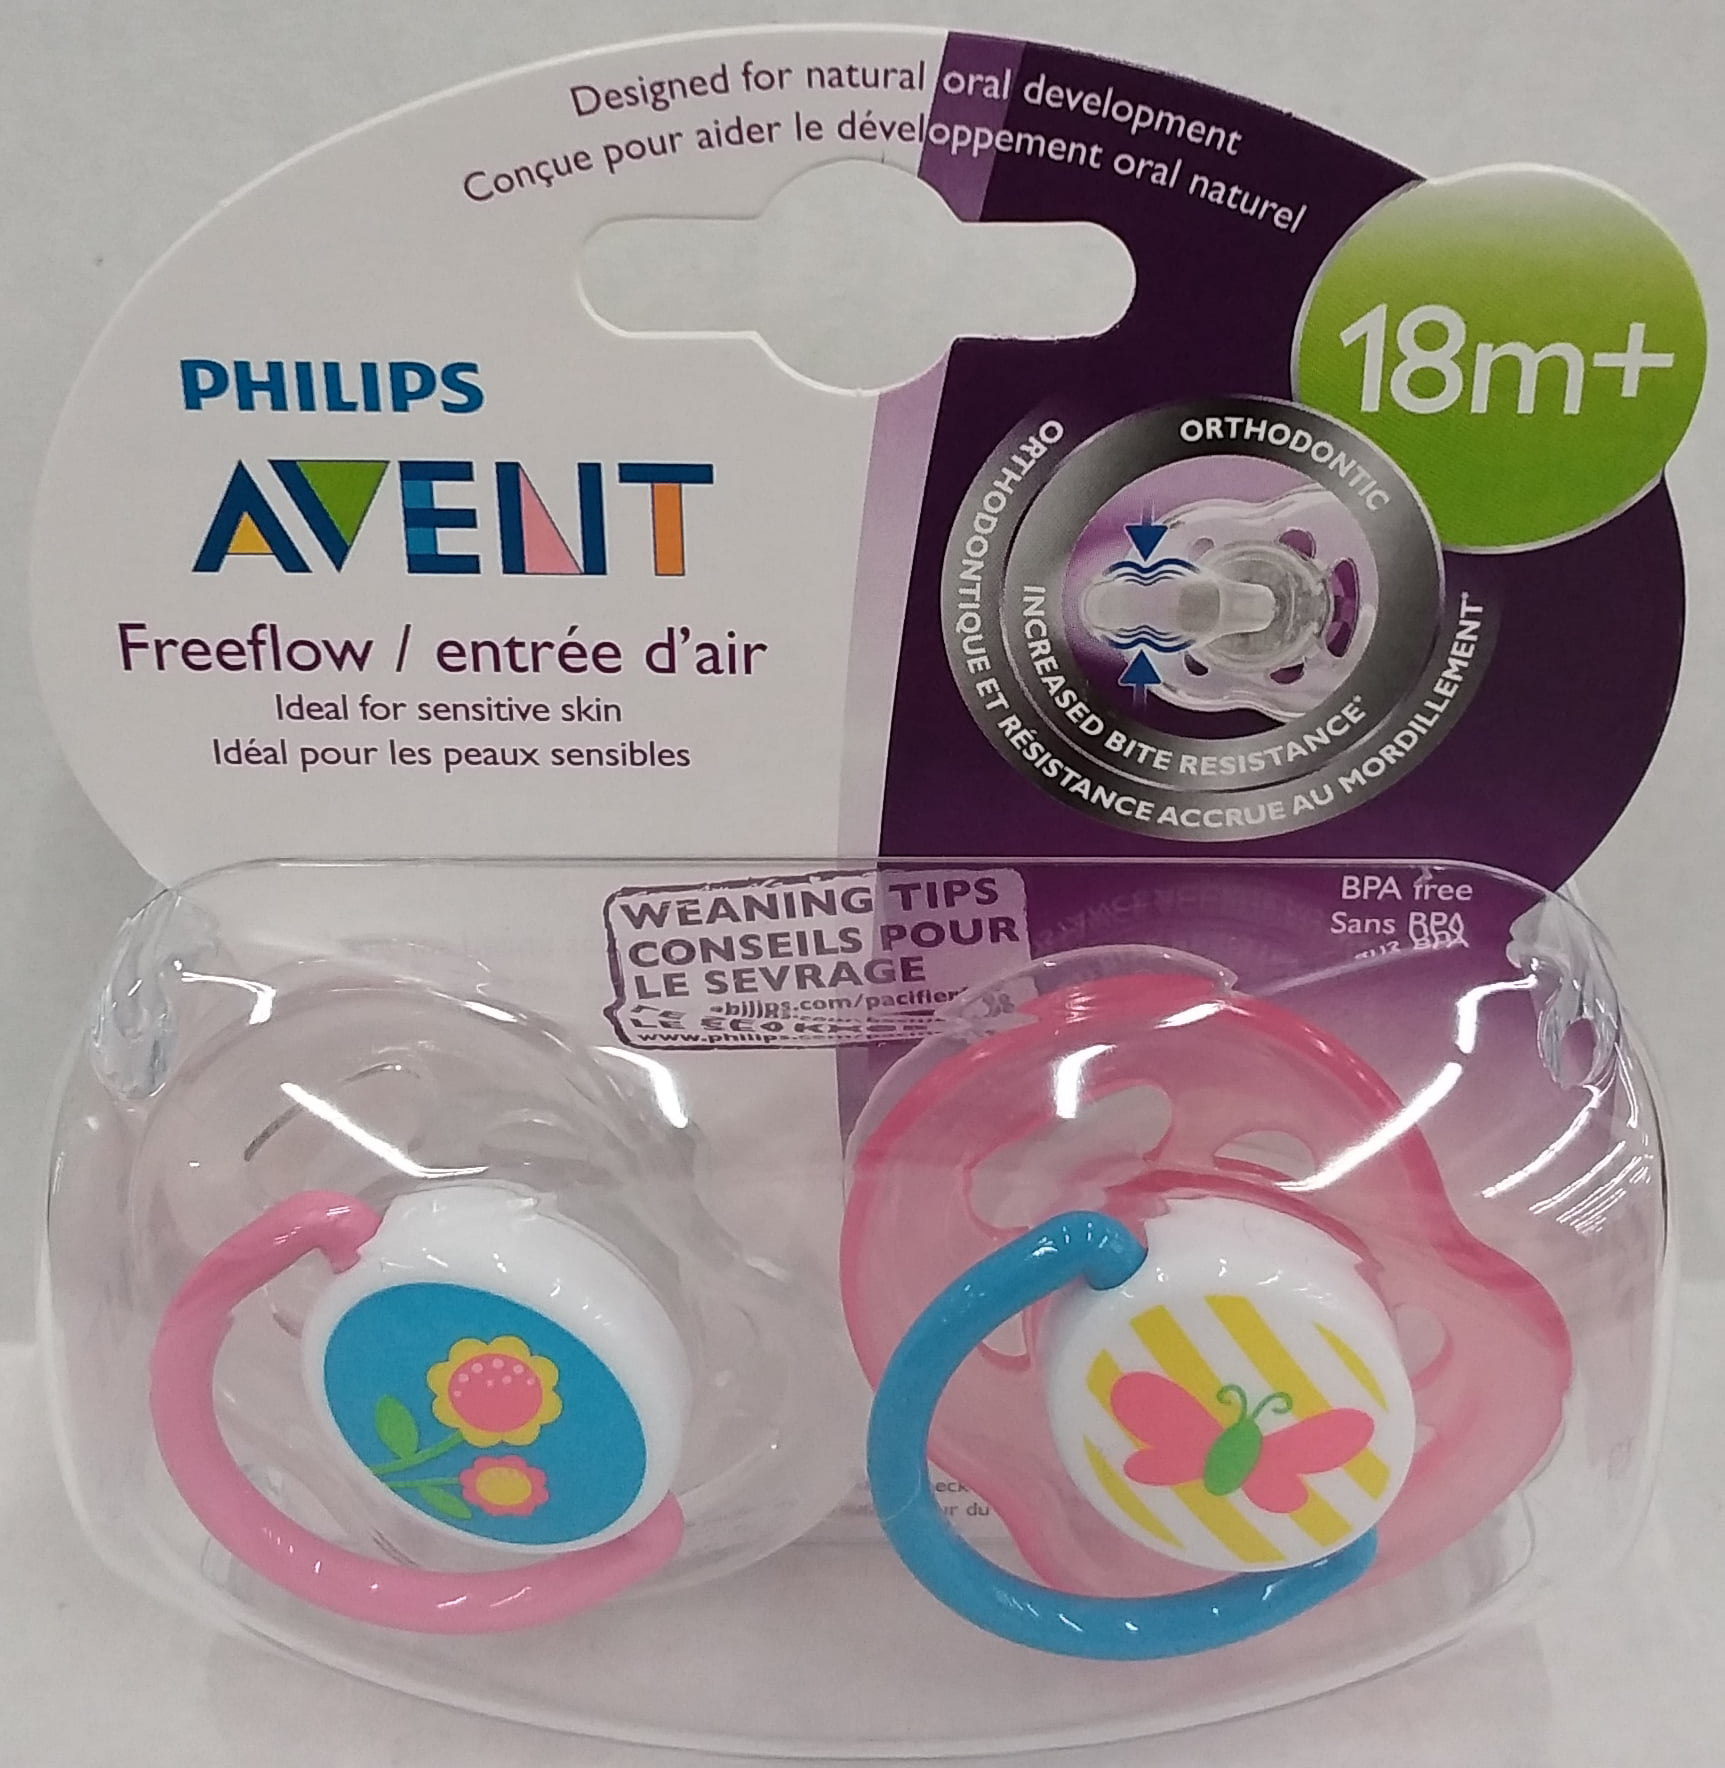 2 Ct 6-18m Pack of 2 Blue Turtle Design Philips Avent Free Flow Pacifiers